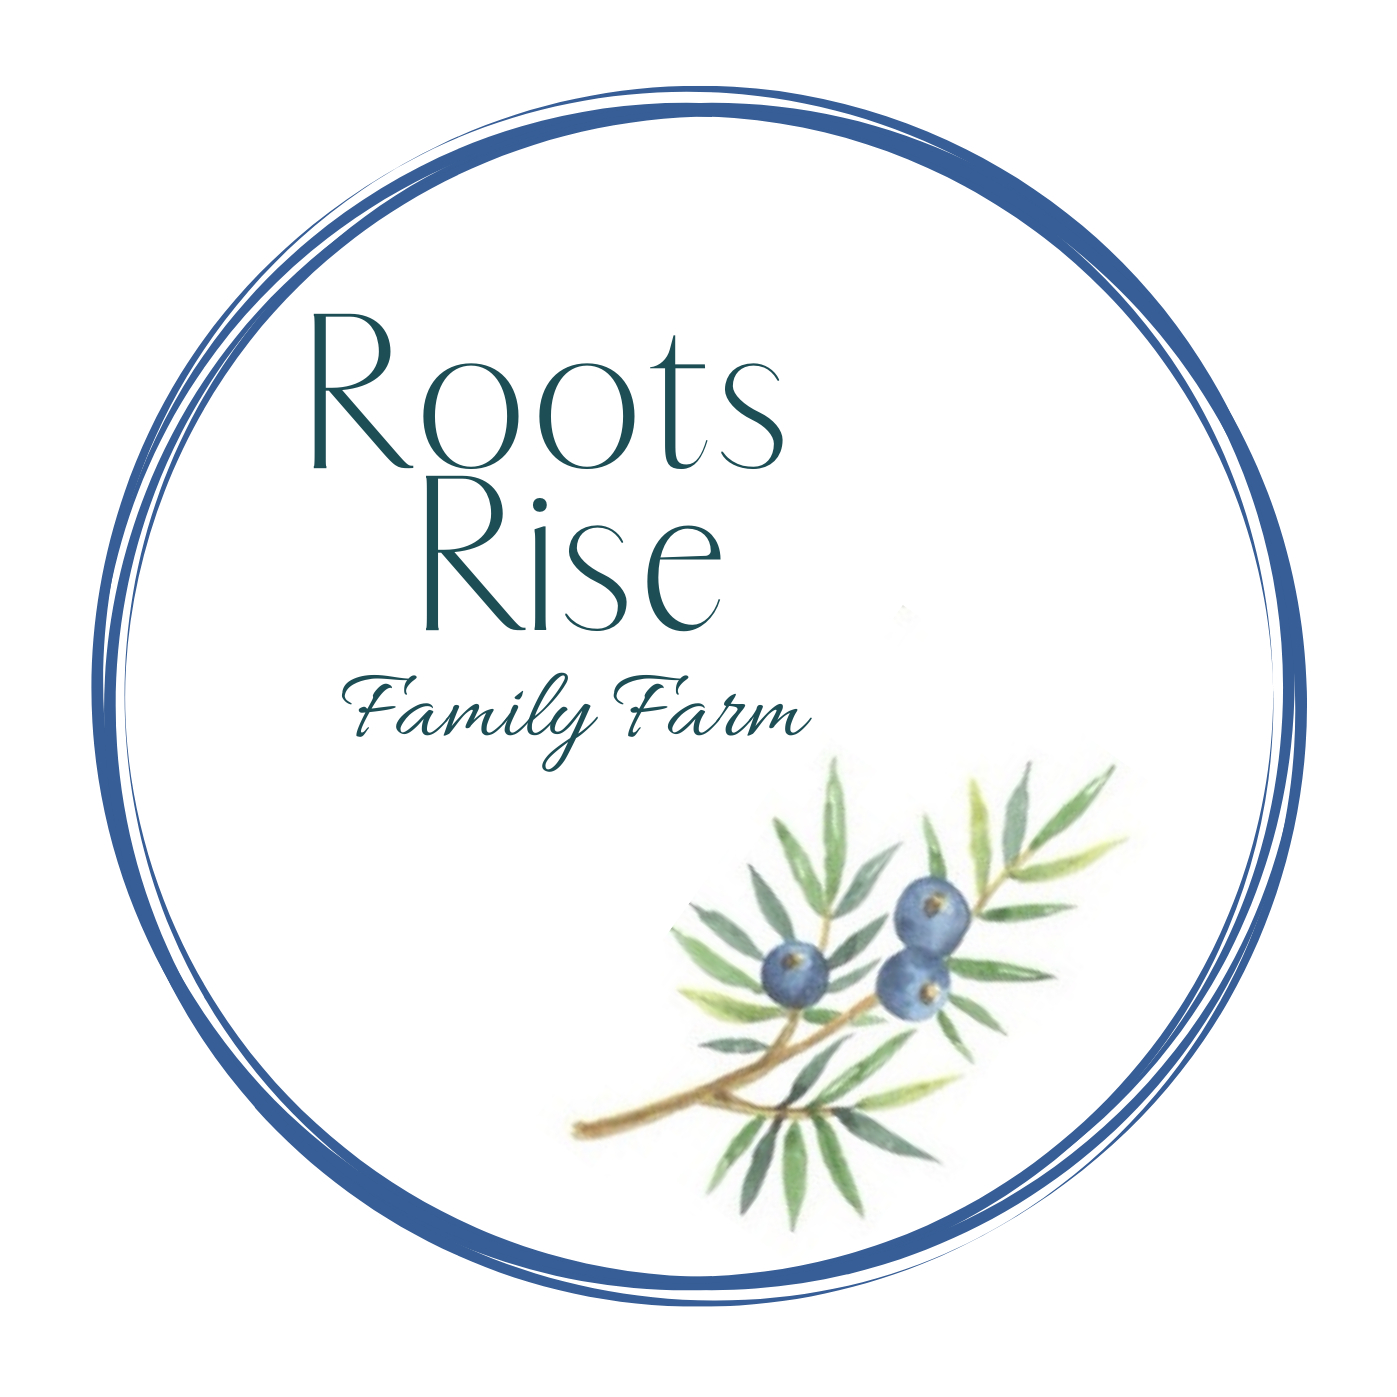 Roots Rise Family Farm